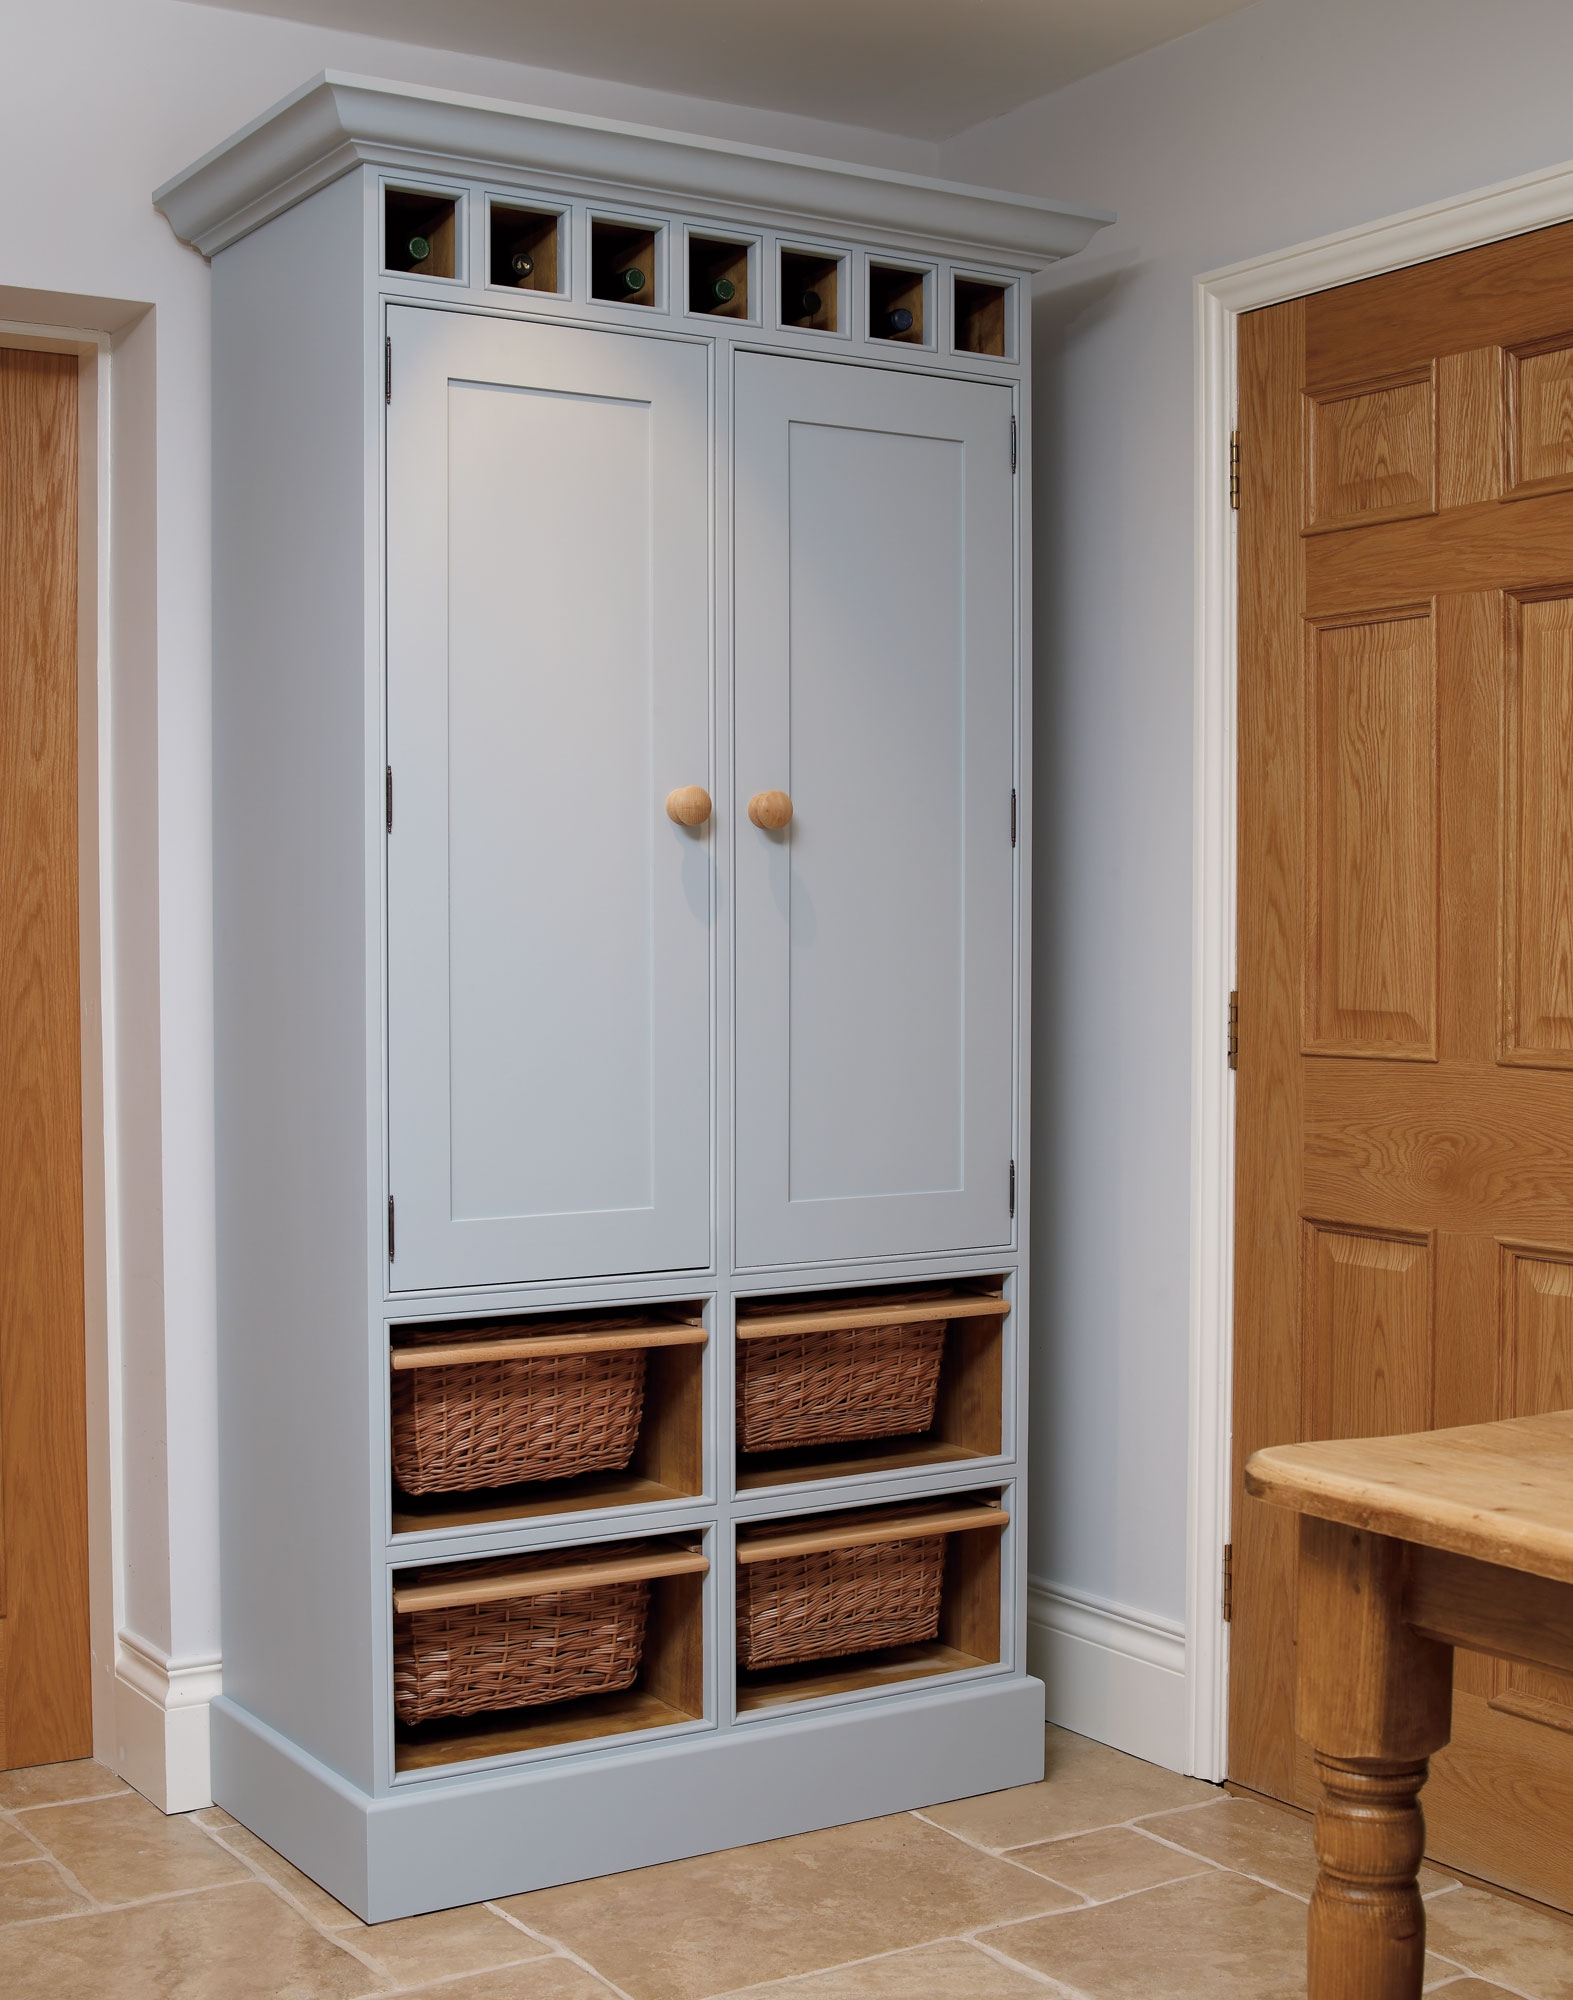 Kitchen Larder C The Bespoke Furniture Company For Free Standing Kitchen Larder Cupboards (View 24 of 25)